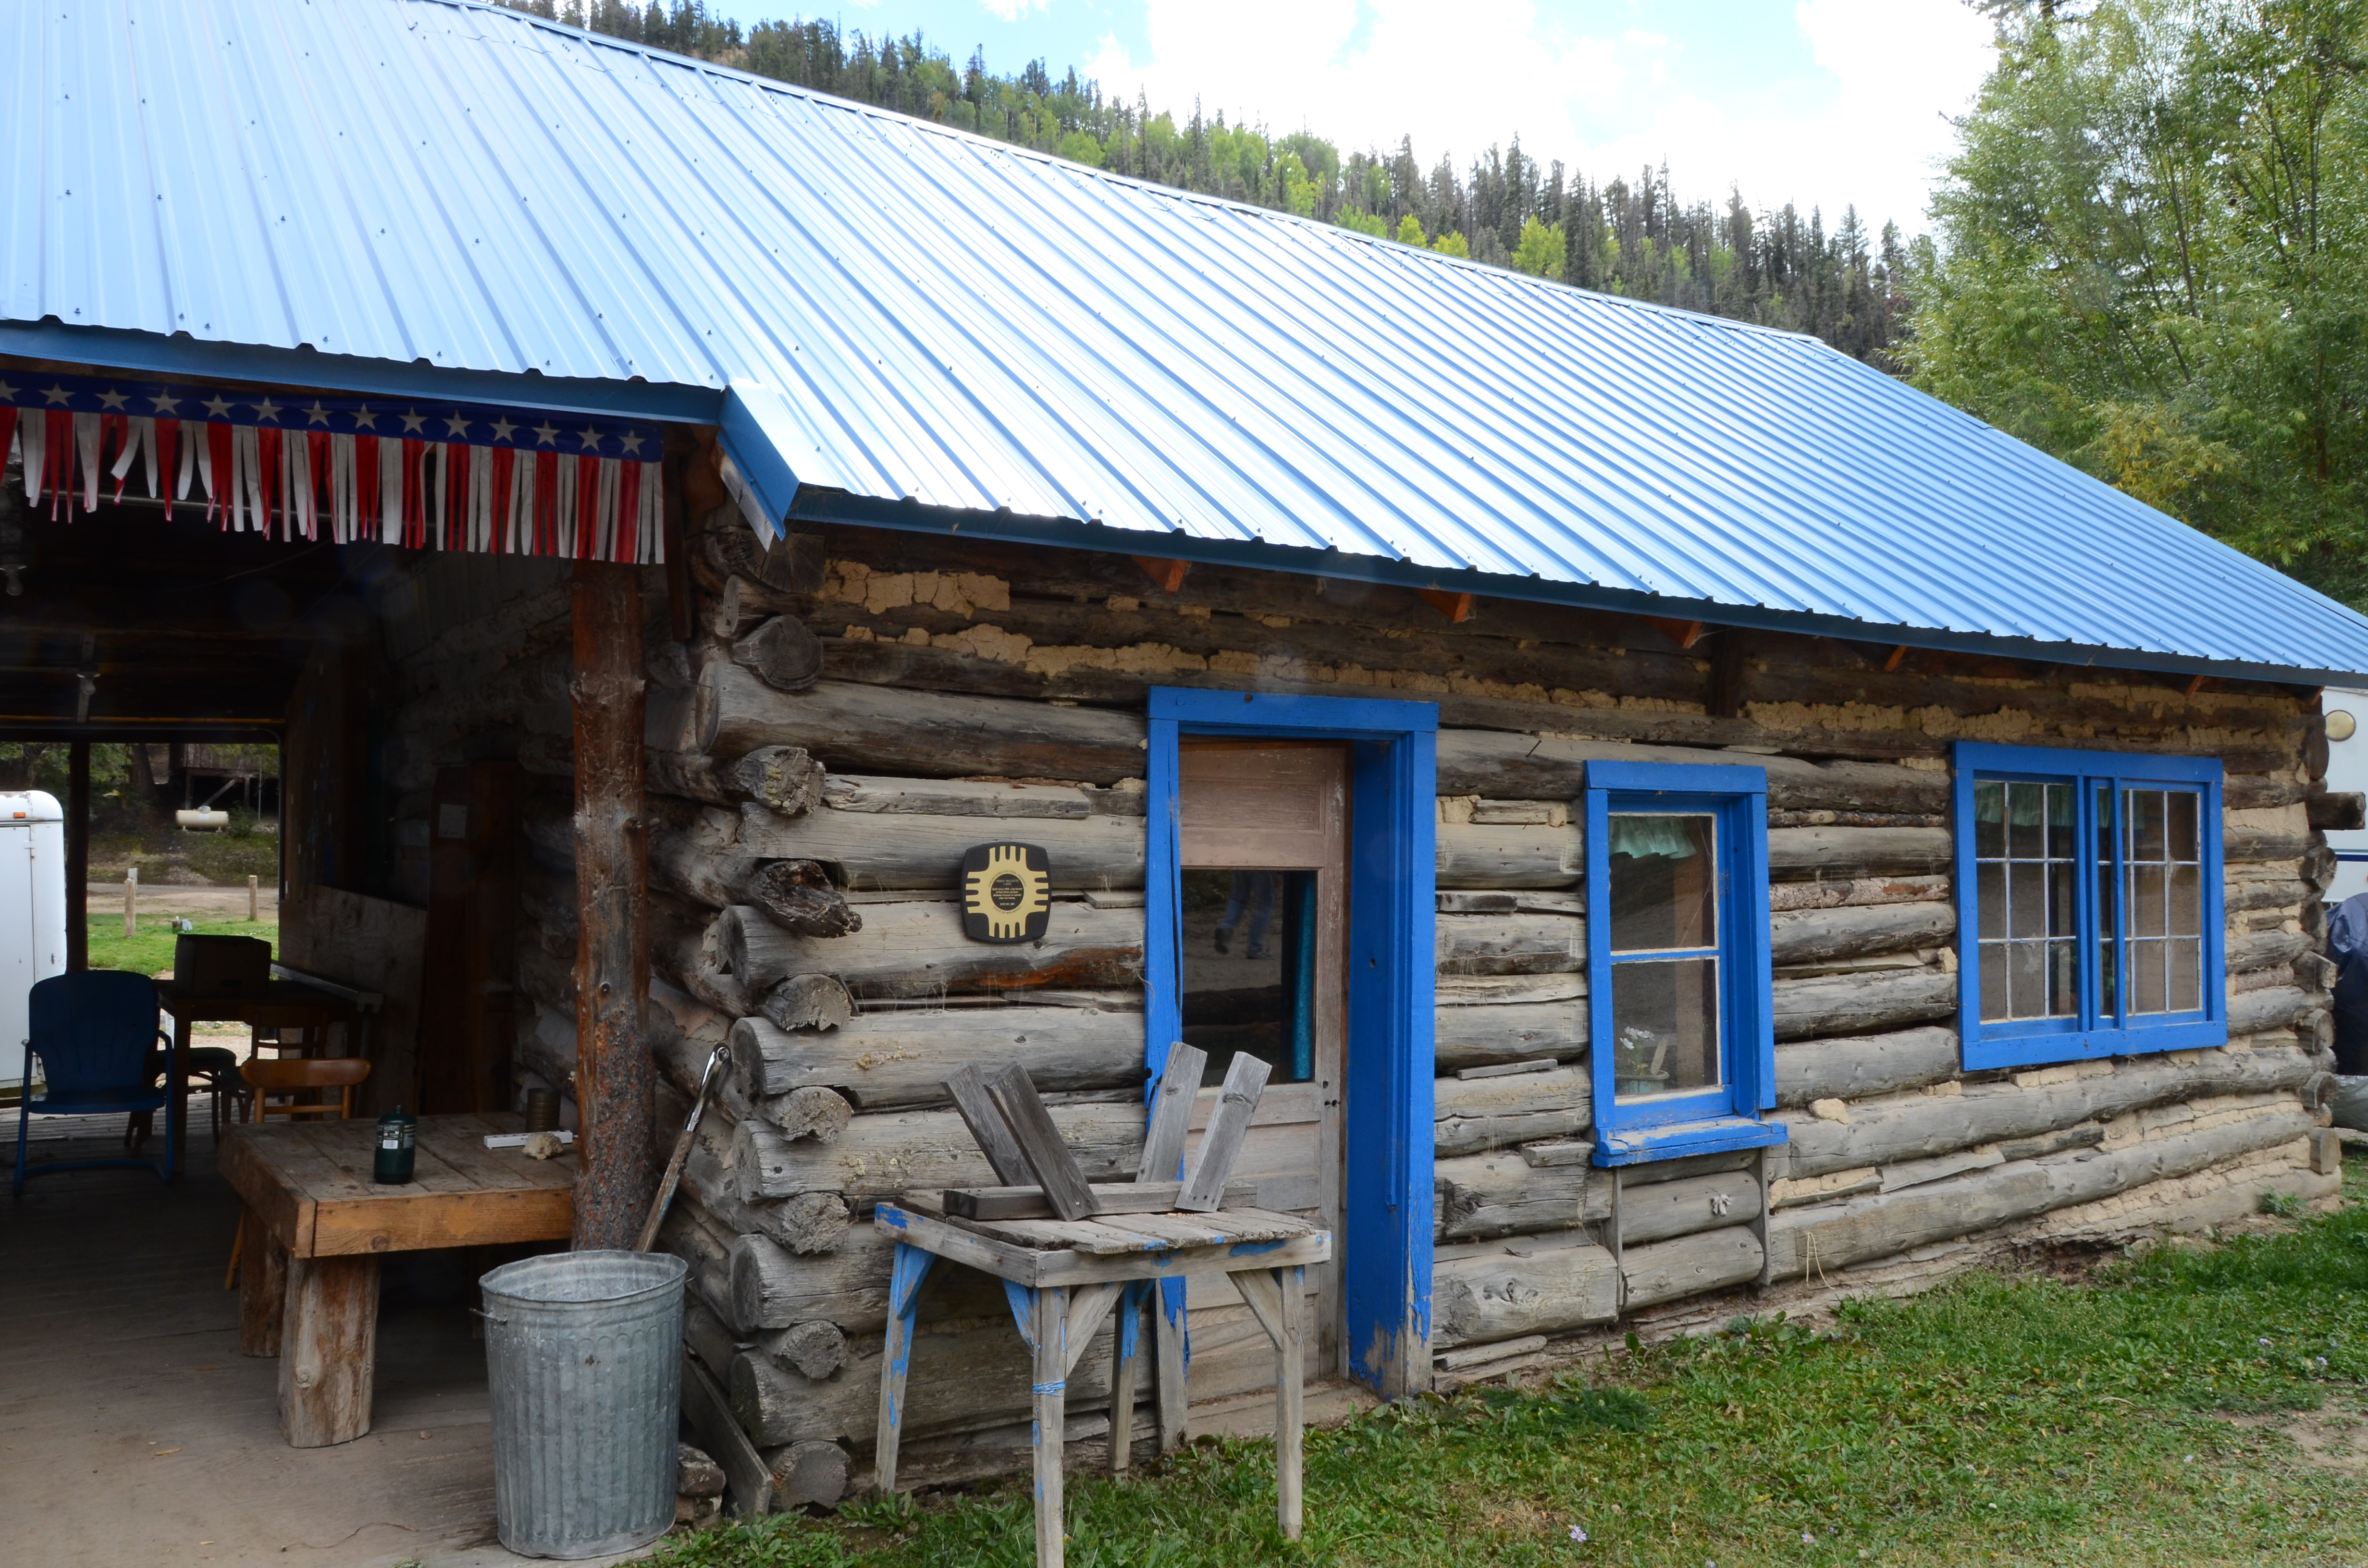 yard river open around our private porch home nm ha wrap washer property cabins wifi cabin spacious living tenderfoot red area in